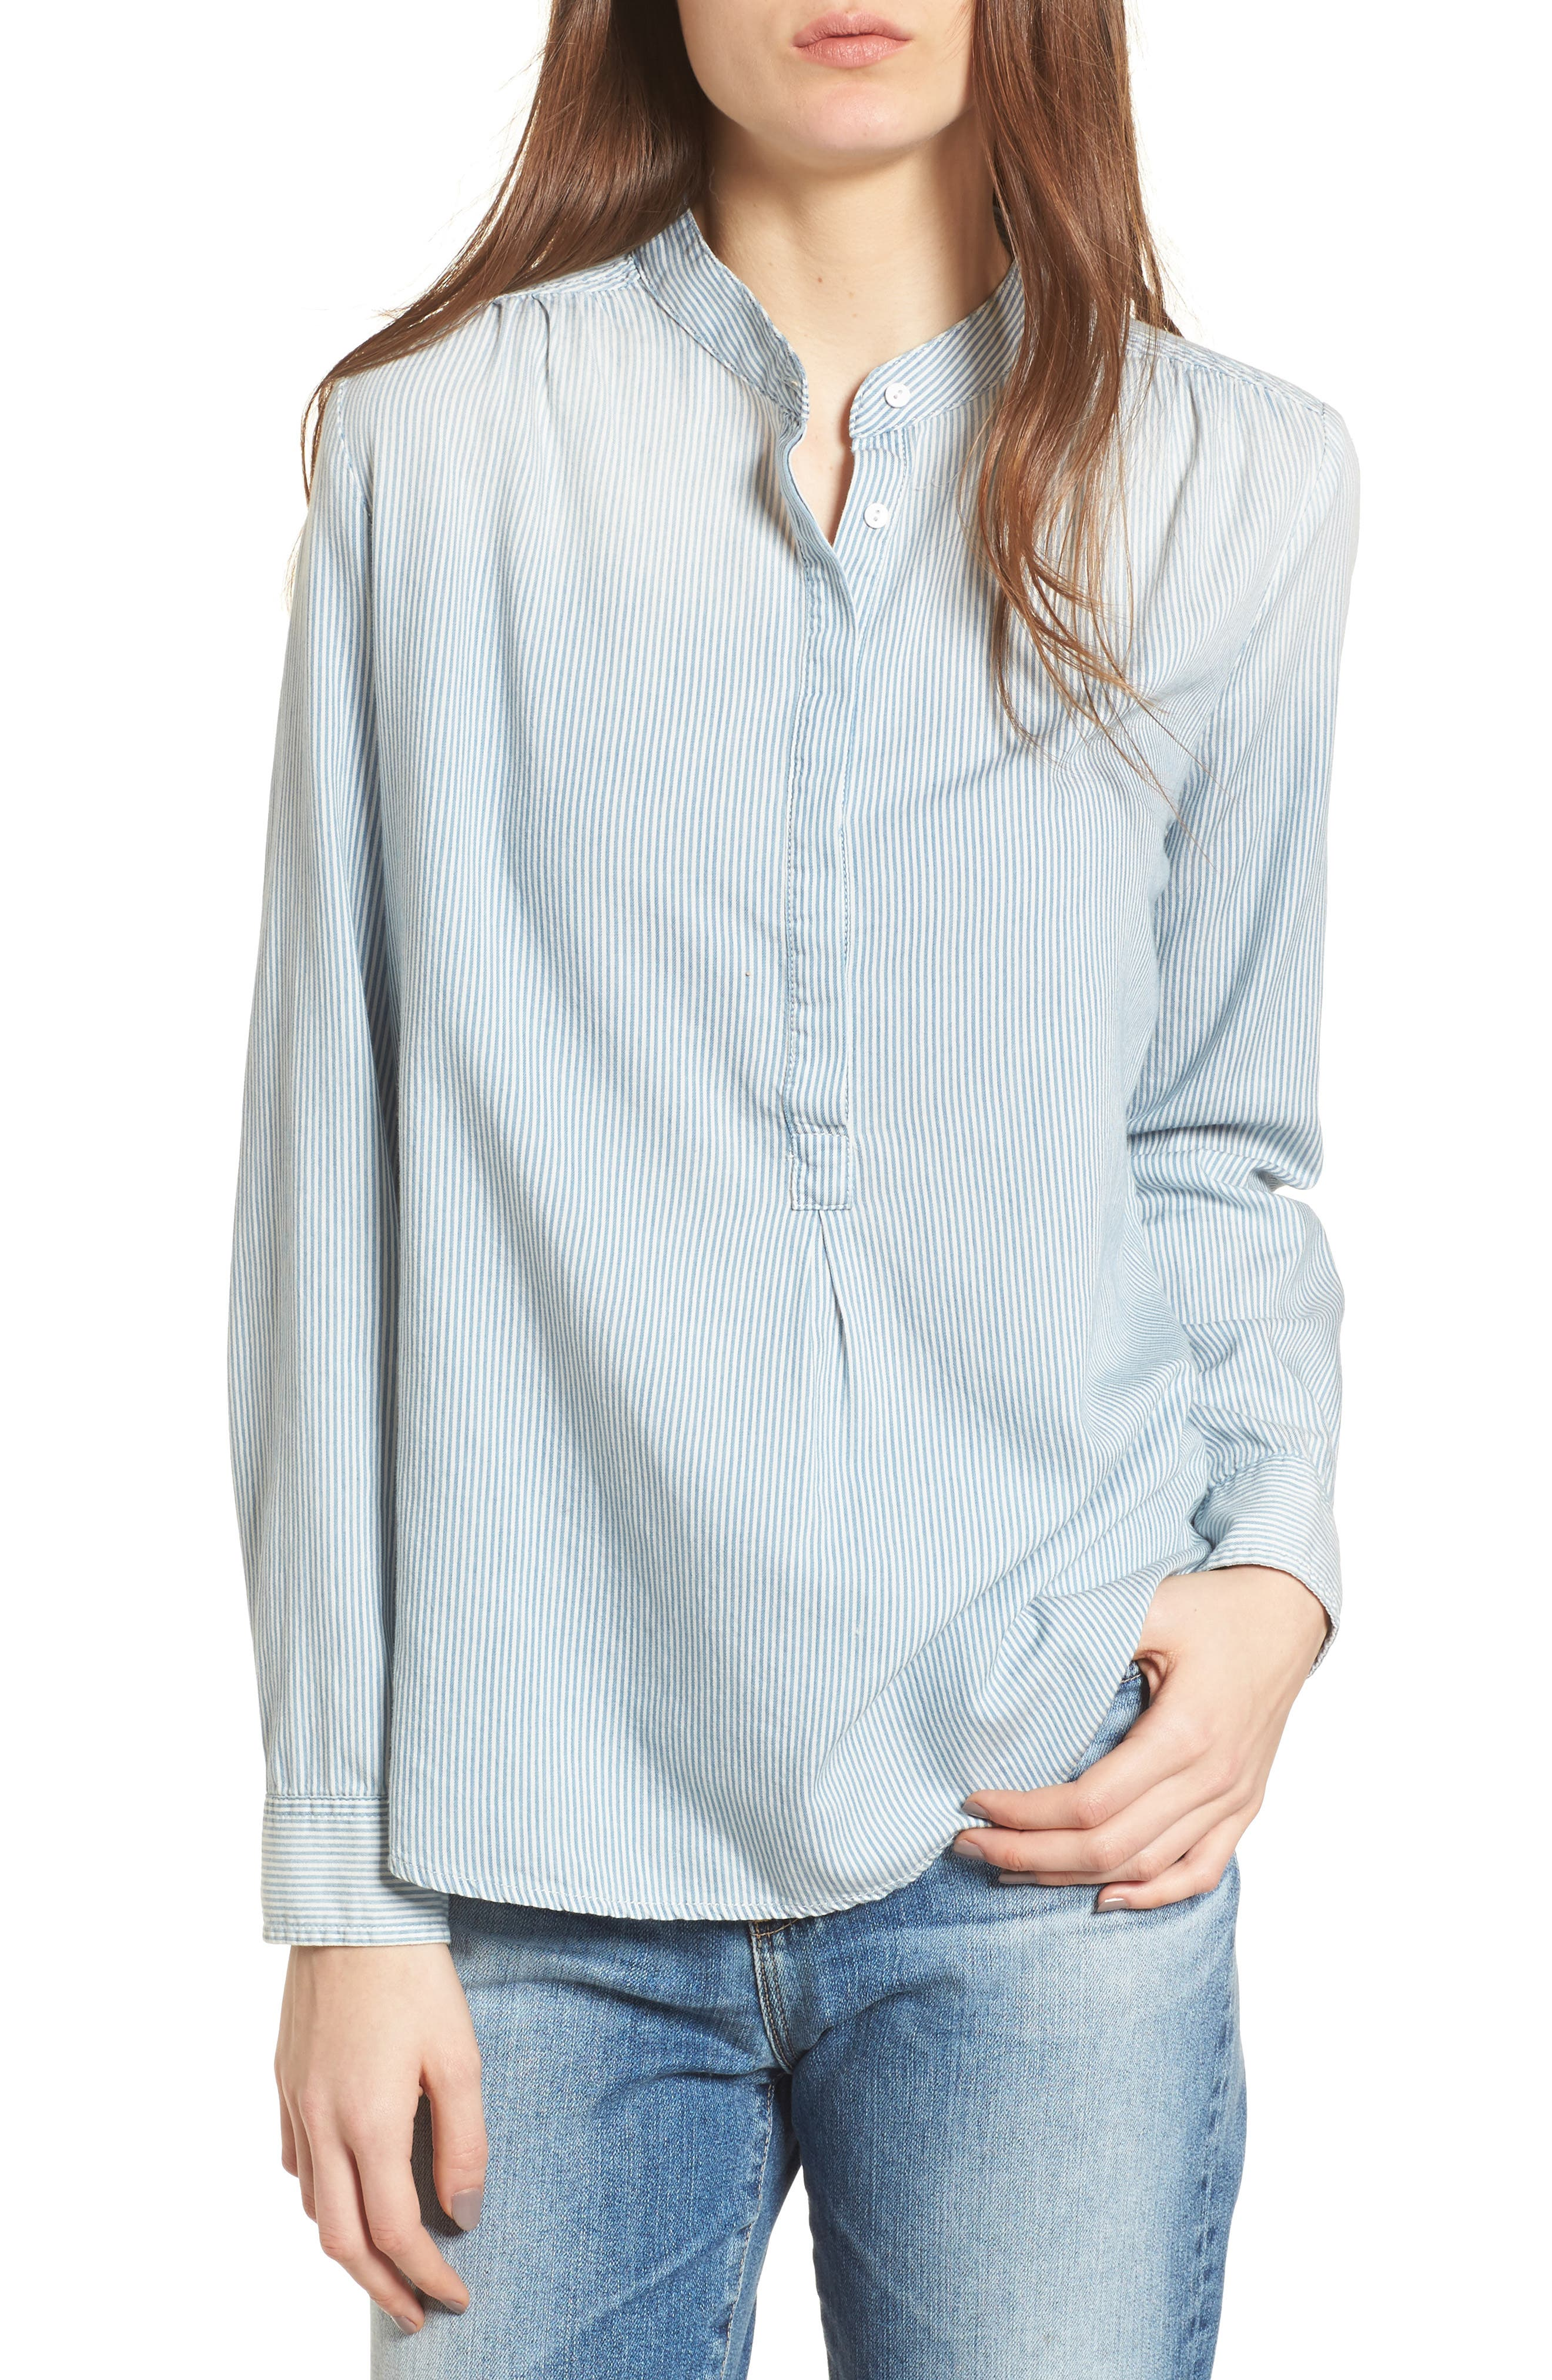 Audryn Shirt,                         Main,                         color, Swell